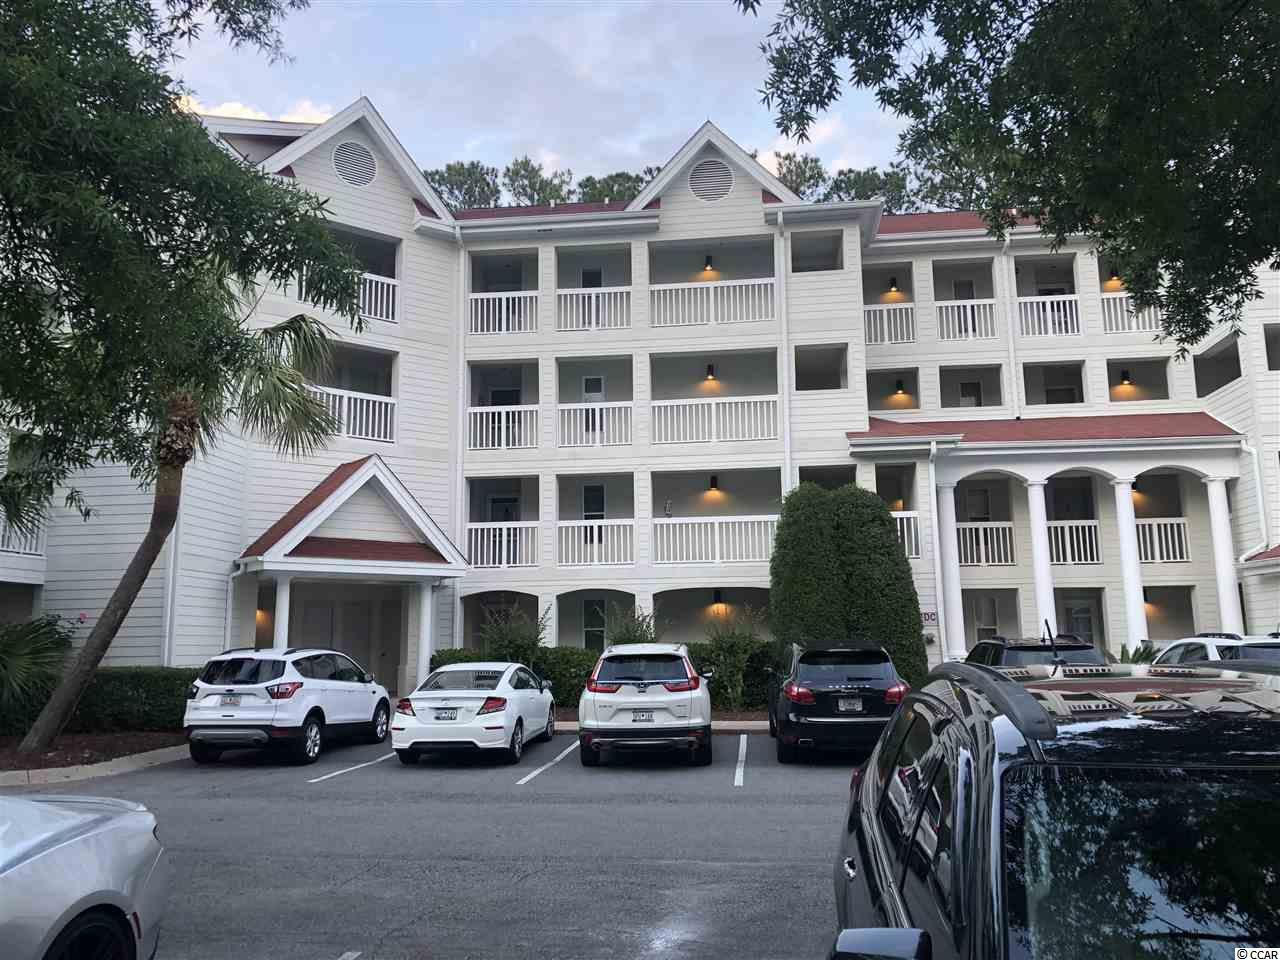 2 BD/ 2BA condo located in the heart of East Port Golf and Waterway Community on the 4th floor of an elevator building. New HVAC, paint, water heater and shut off valves to water heater and main valves installed in 2019. Stainless steel appliances in the kitchen. There is a screen porch that can be accessed from the Master Bedroom or the Living Room area. This unit would be great as permanent residence or a 2nd home. Conveniently located in the heart of Little River and close to golf, restaurants and shopping.